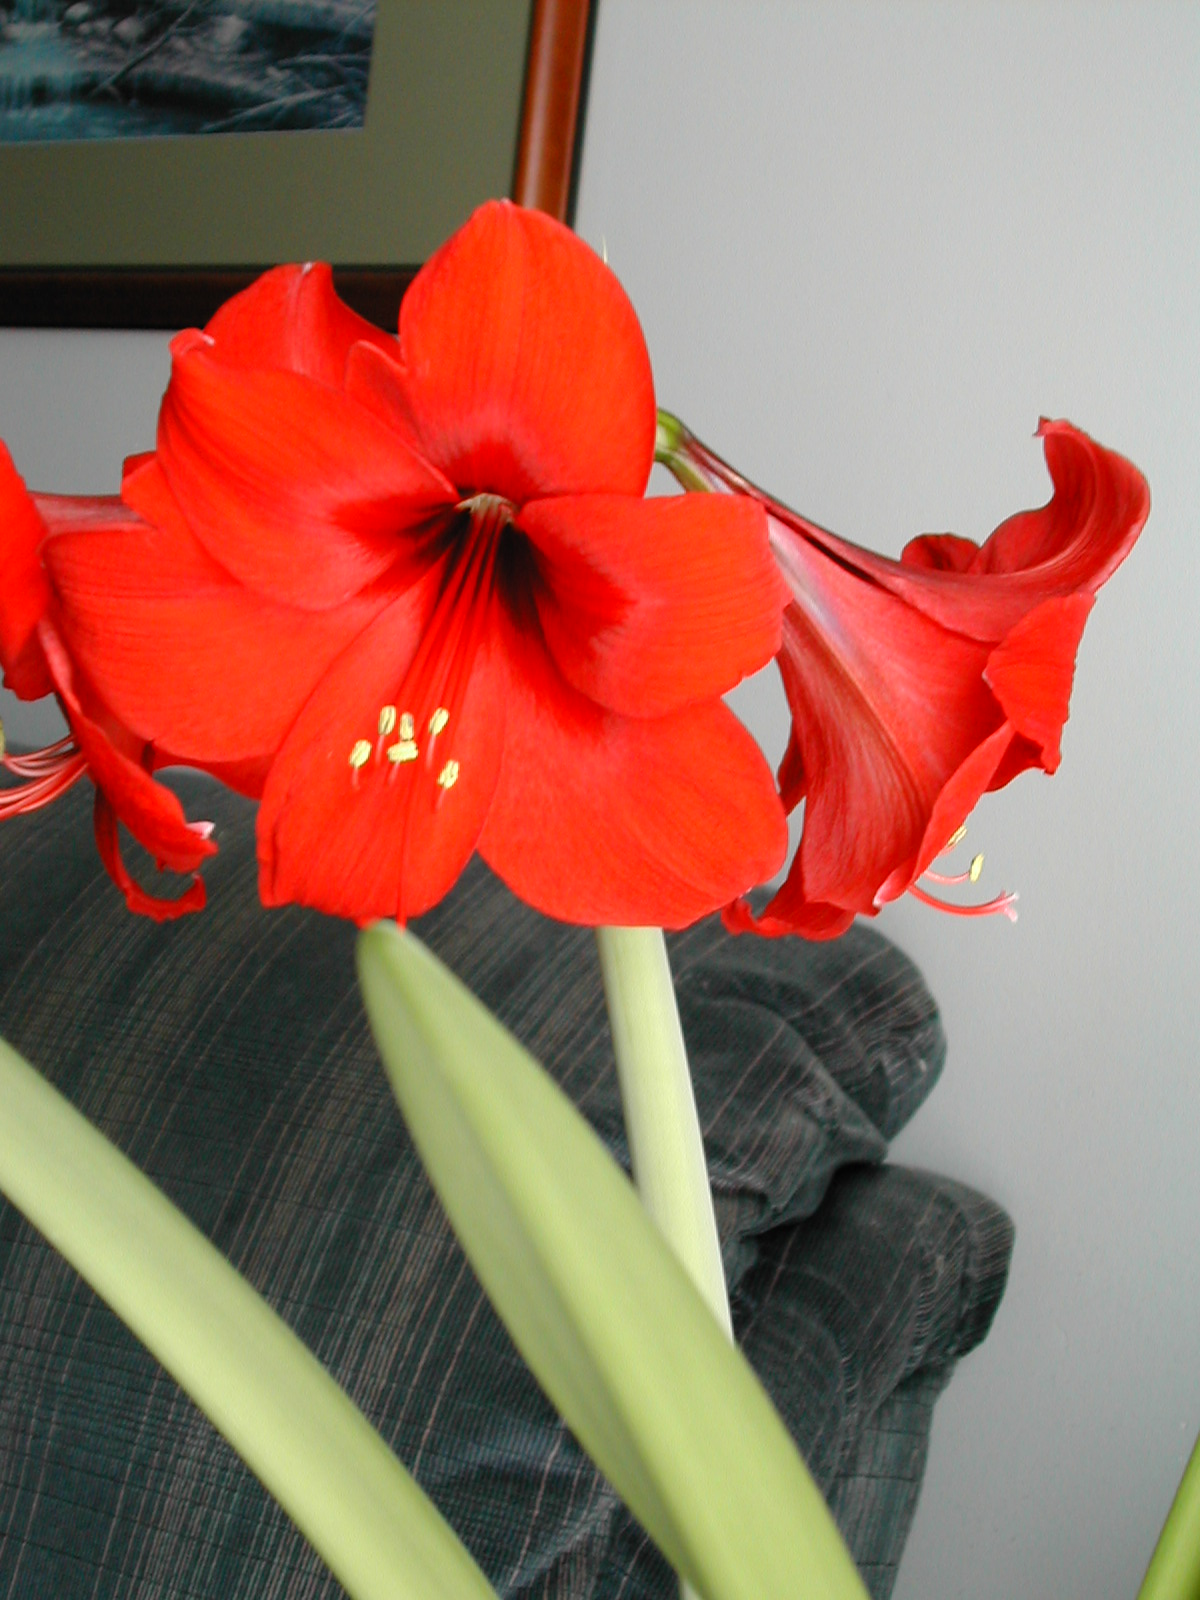 The other red christmas flower amaryllis planting and care dons my mom was given this pretty red flower for christmas and we didnt know what it was called it came in a vase with just water in it mightylinksfo